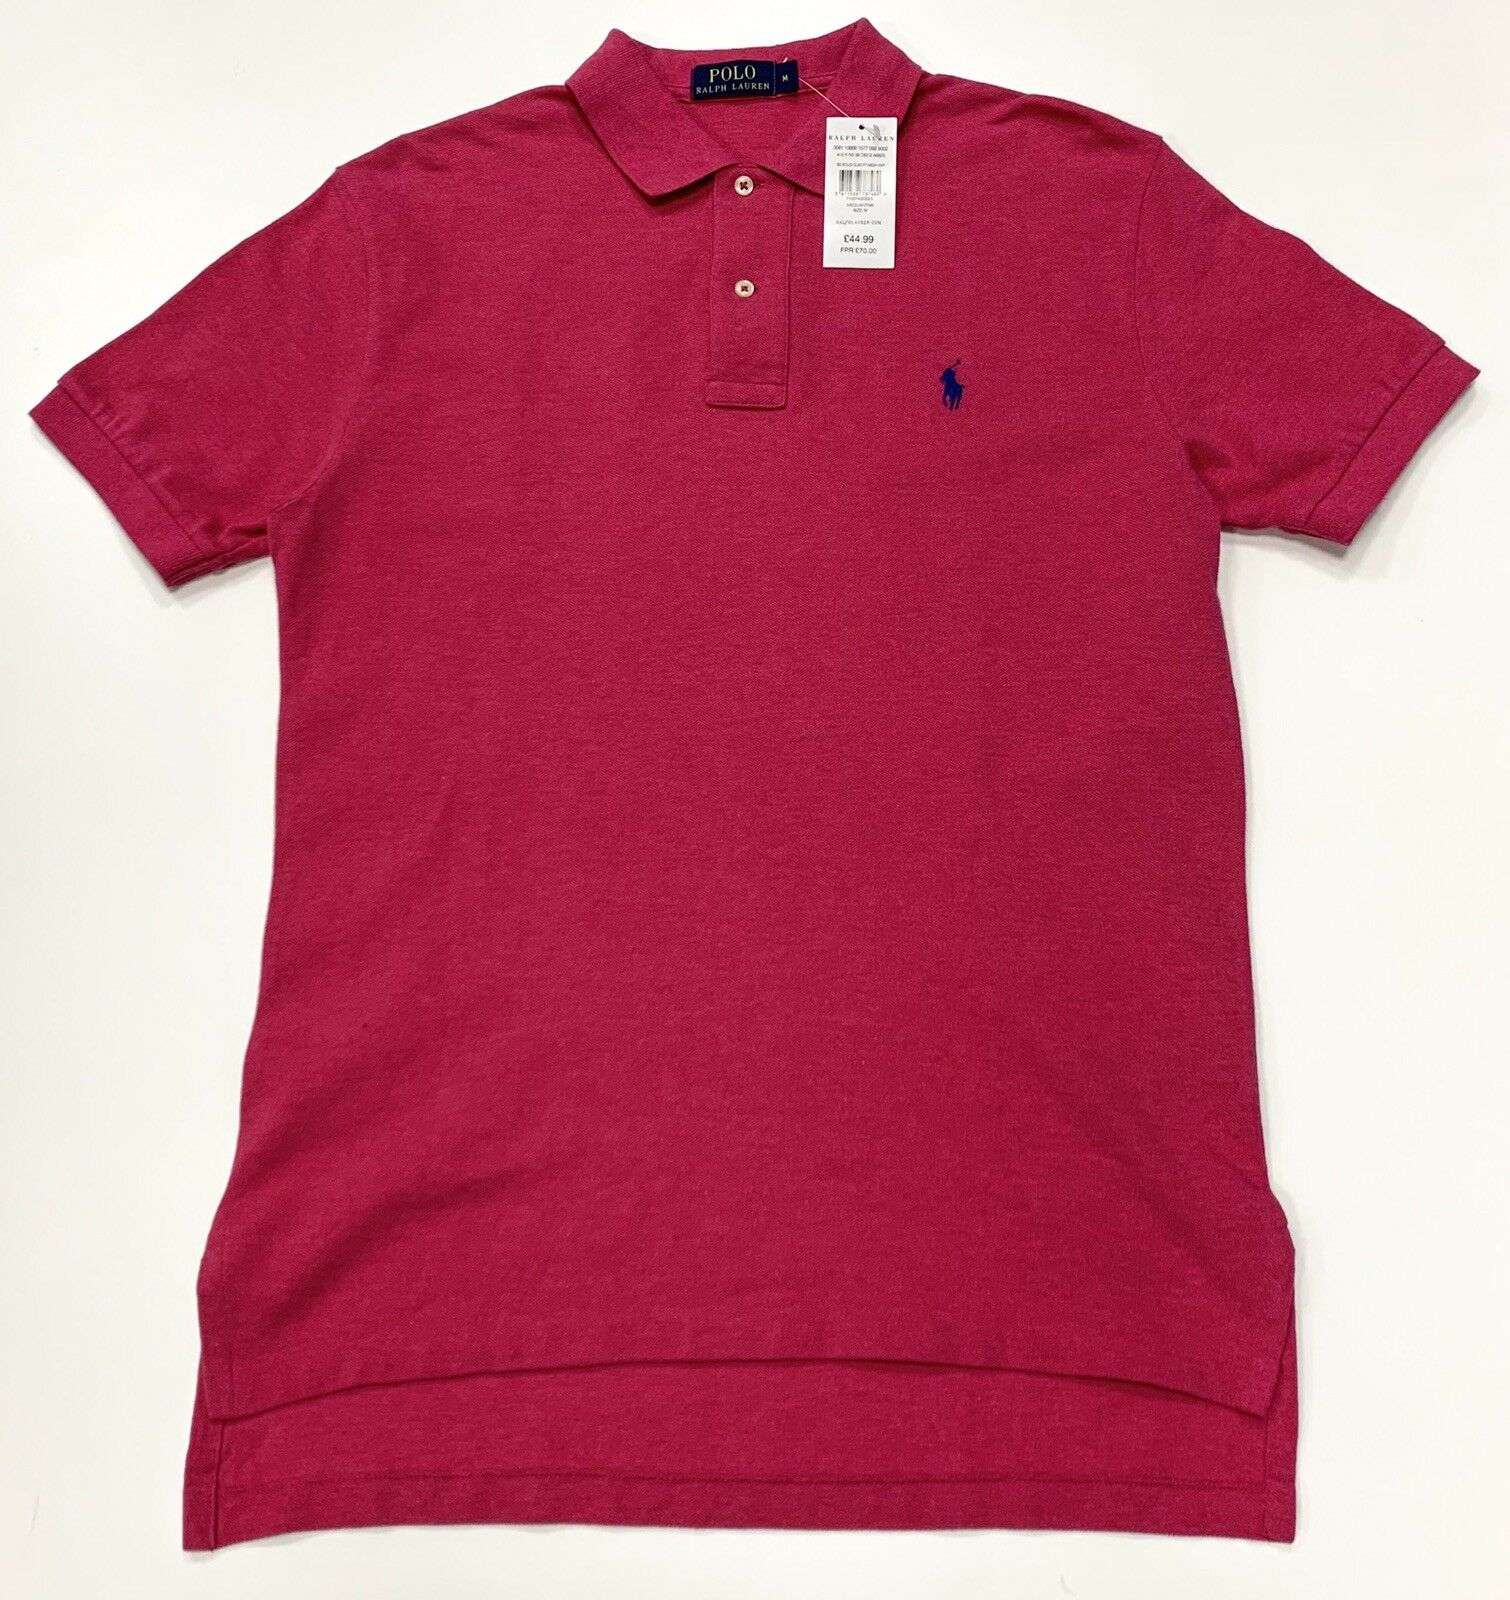 Polo Ralph Lauren Classic Fit Solid Short Sleeve T-Shirt In Pink Size M